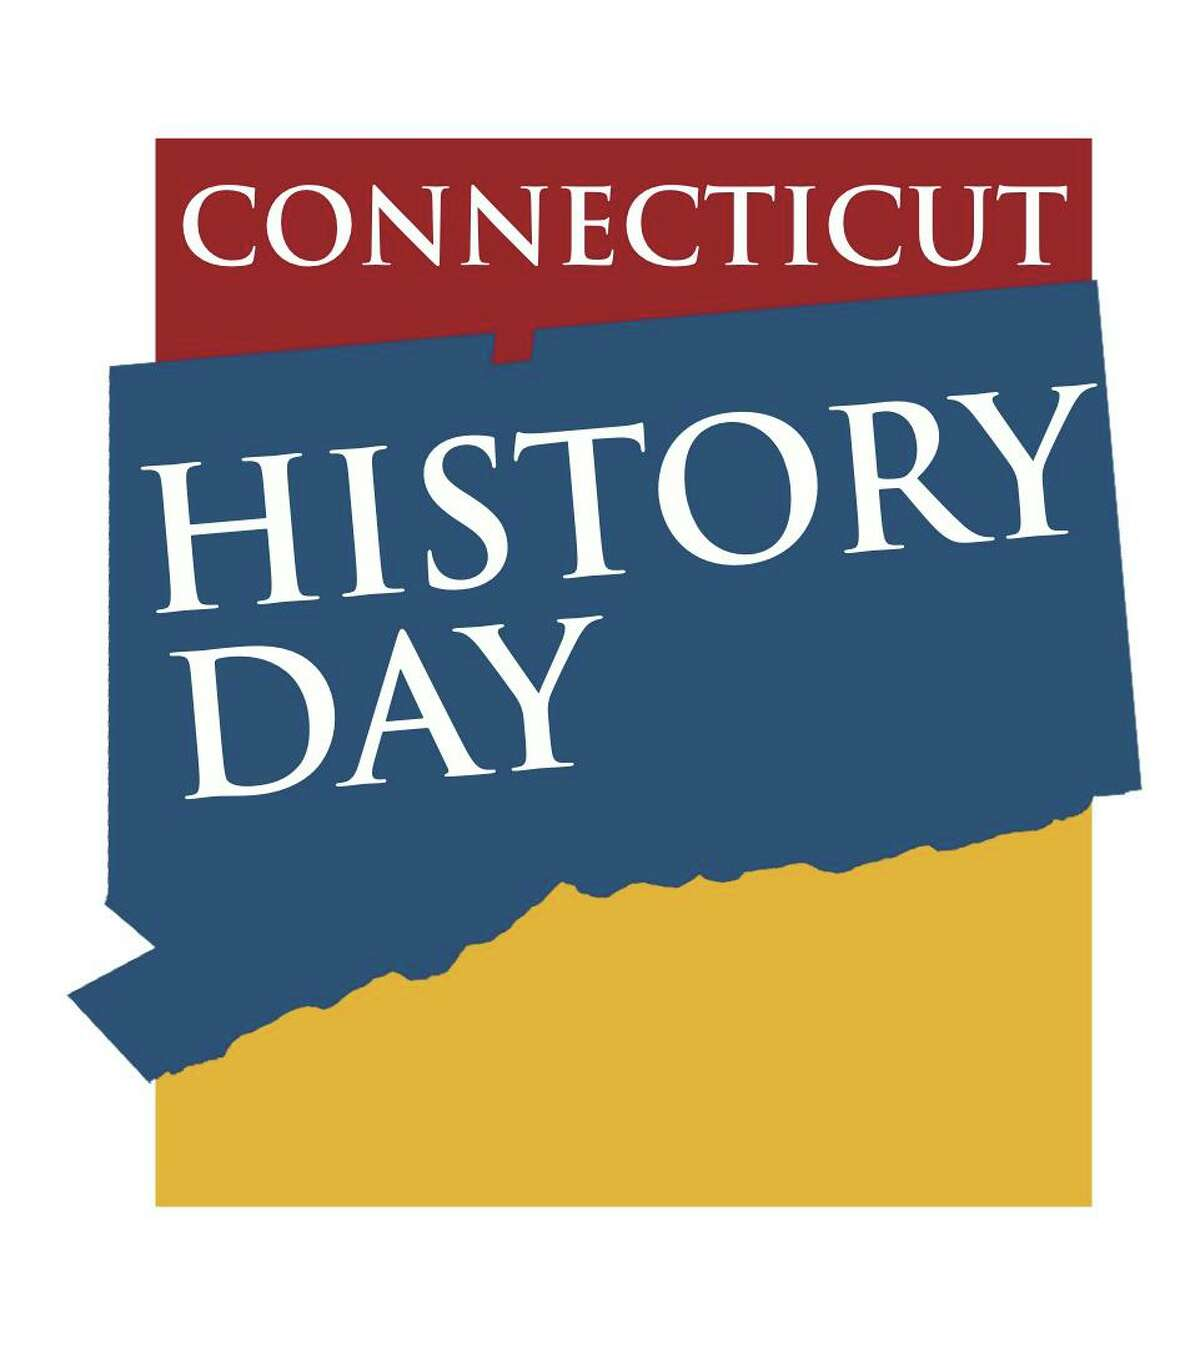 The Connecticut History Day logo.